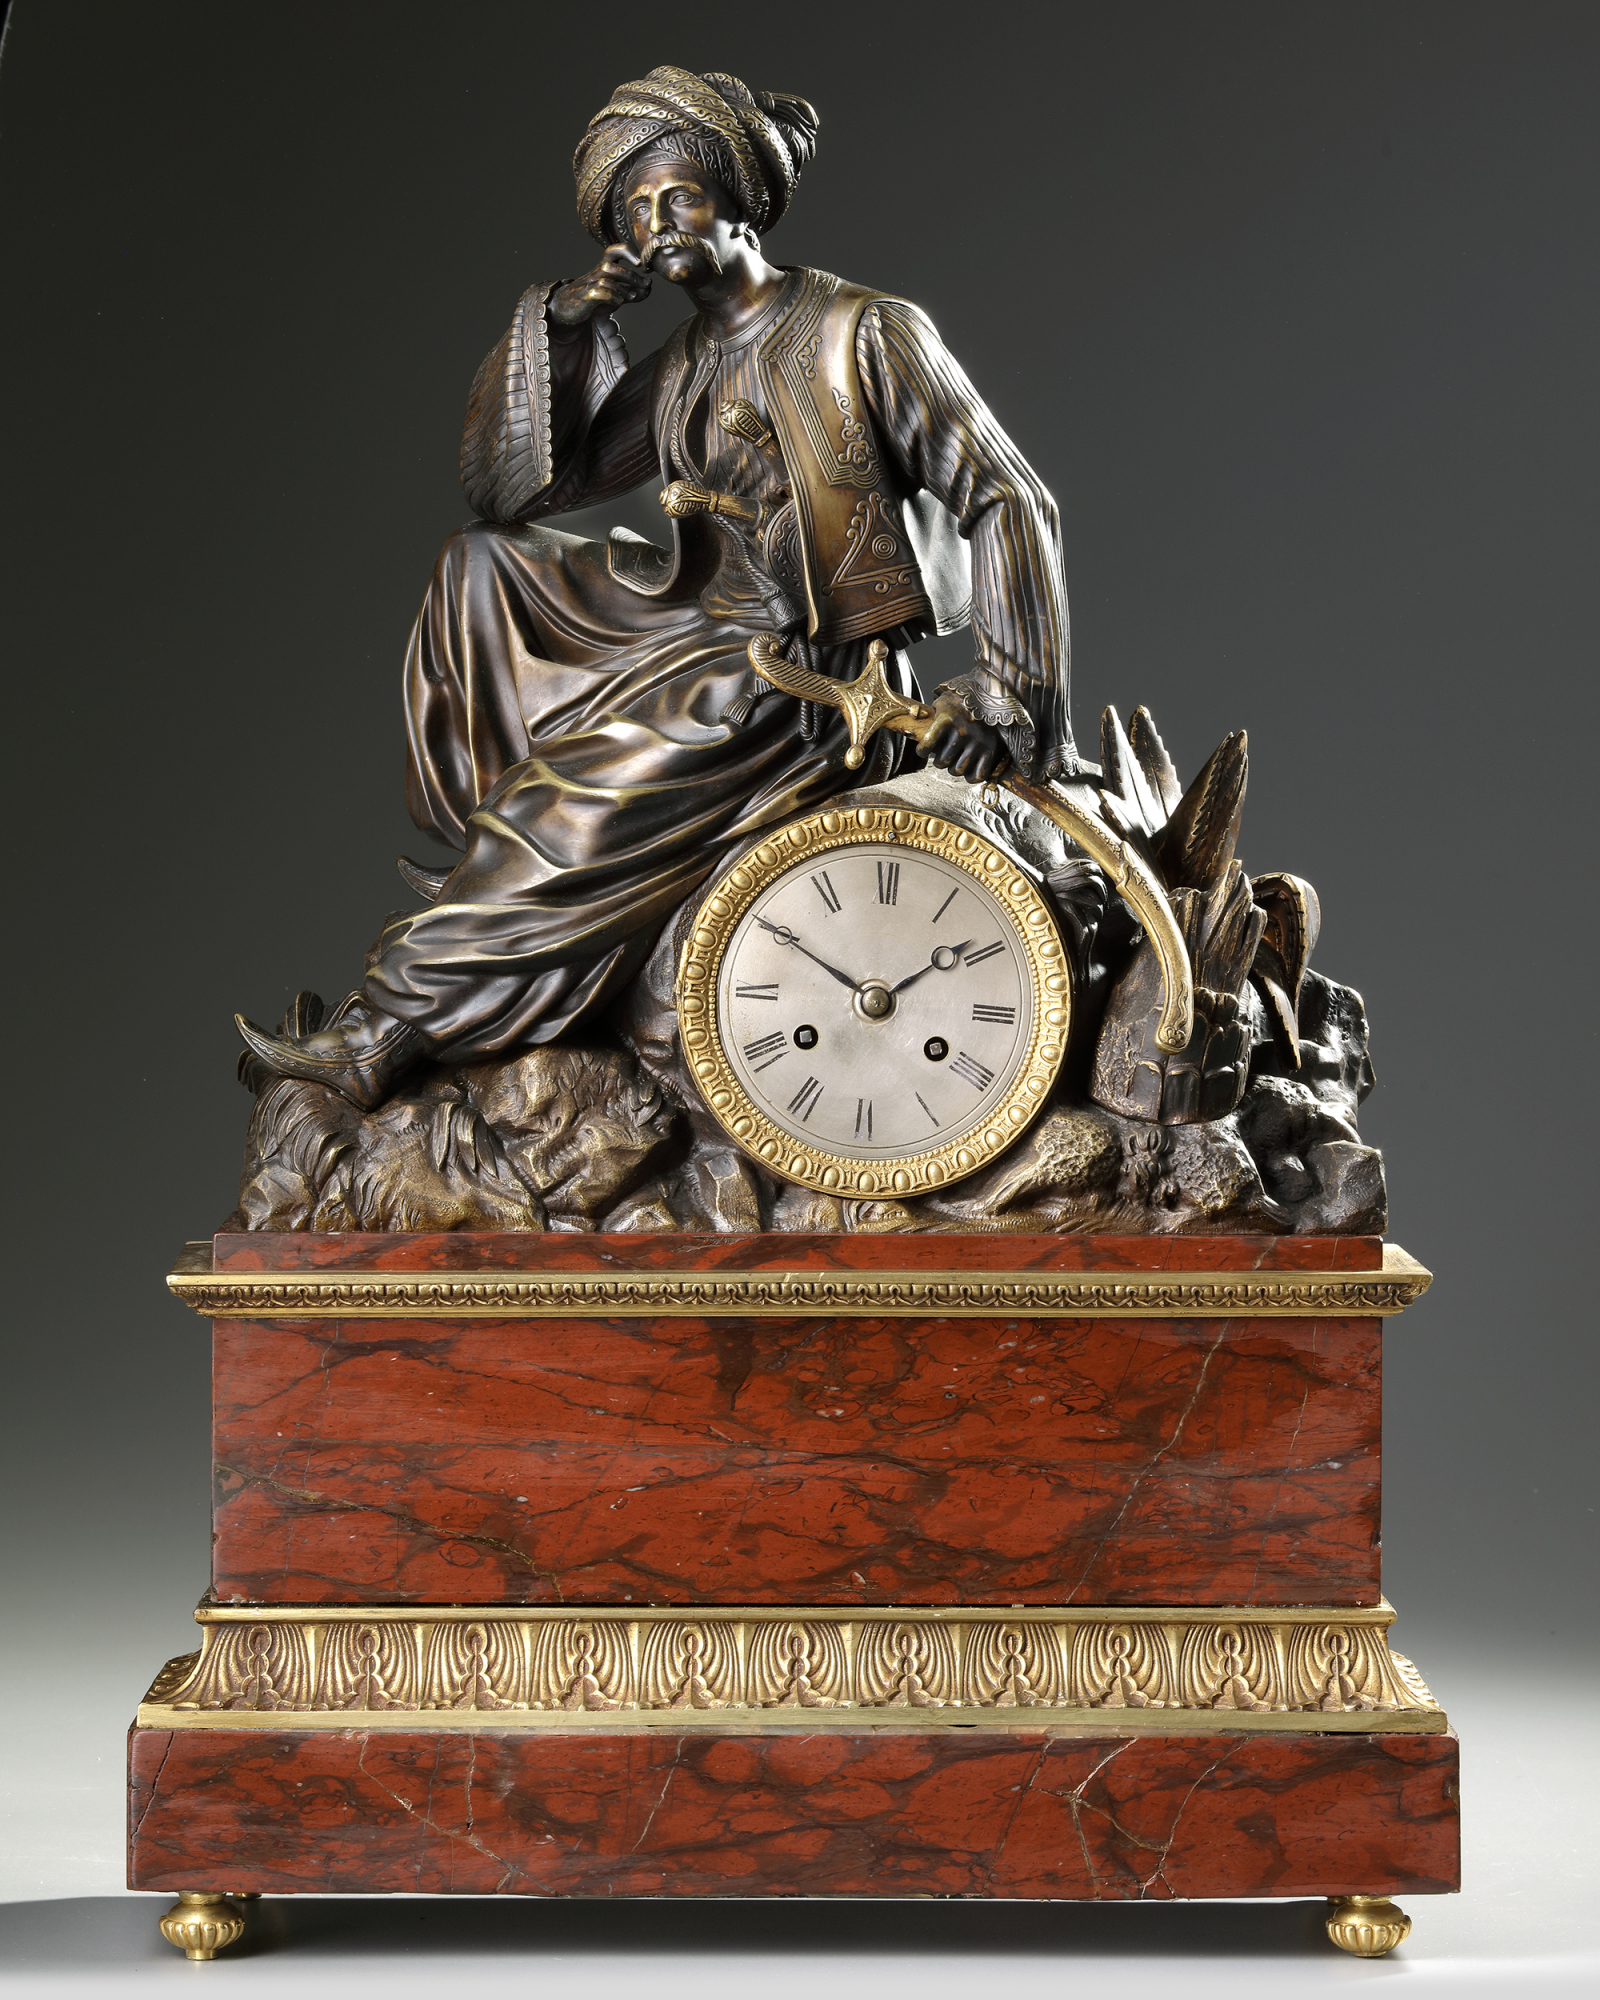 AN ORIENTALIST CLOCK, FRANCE, 19TH CENTURY